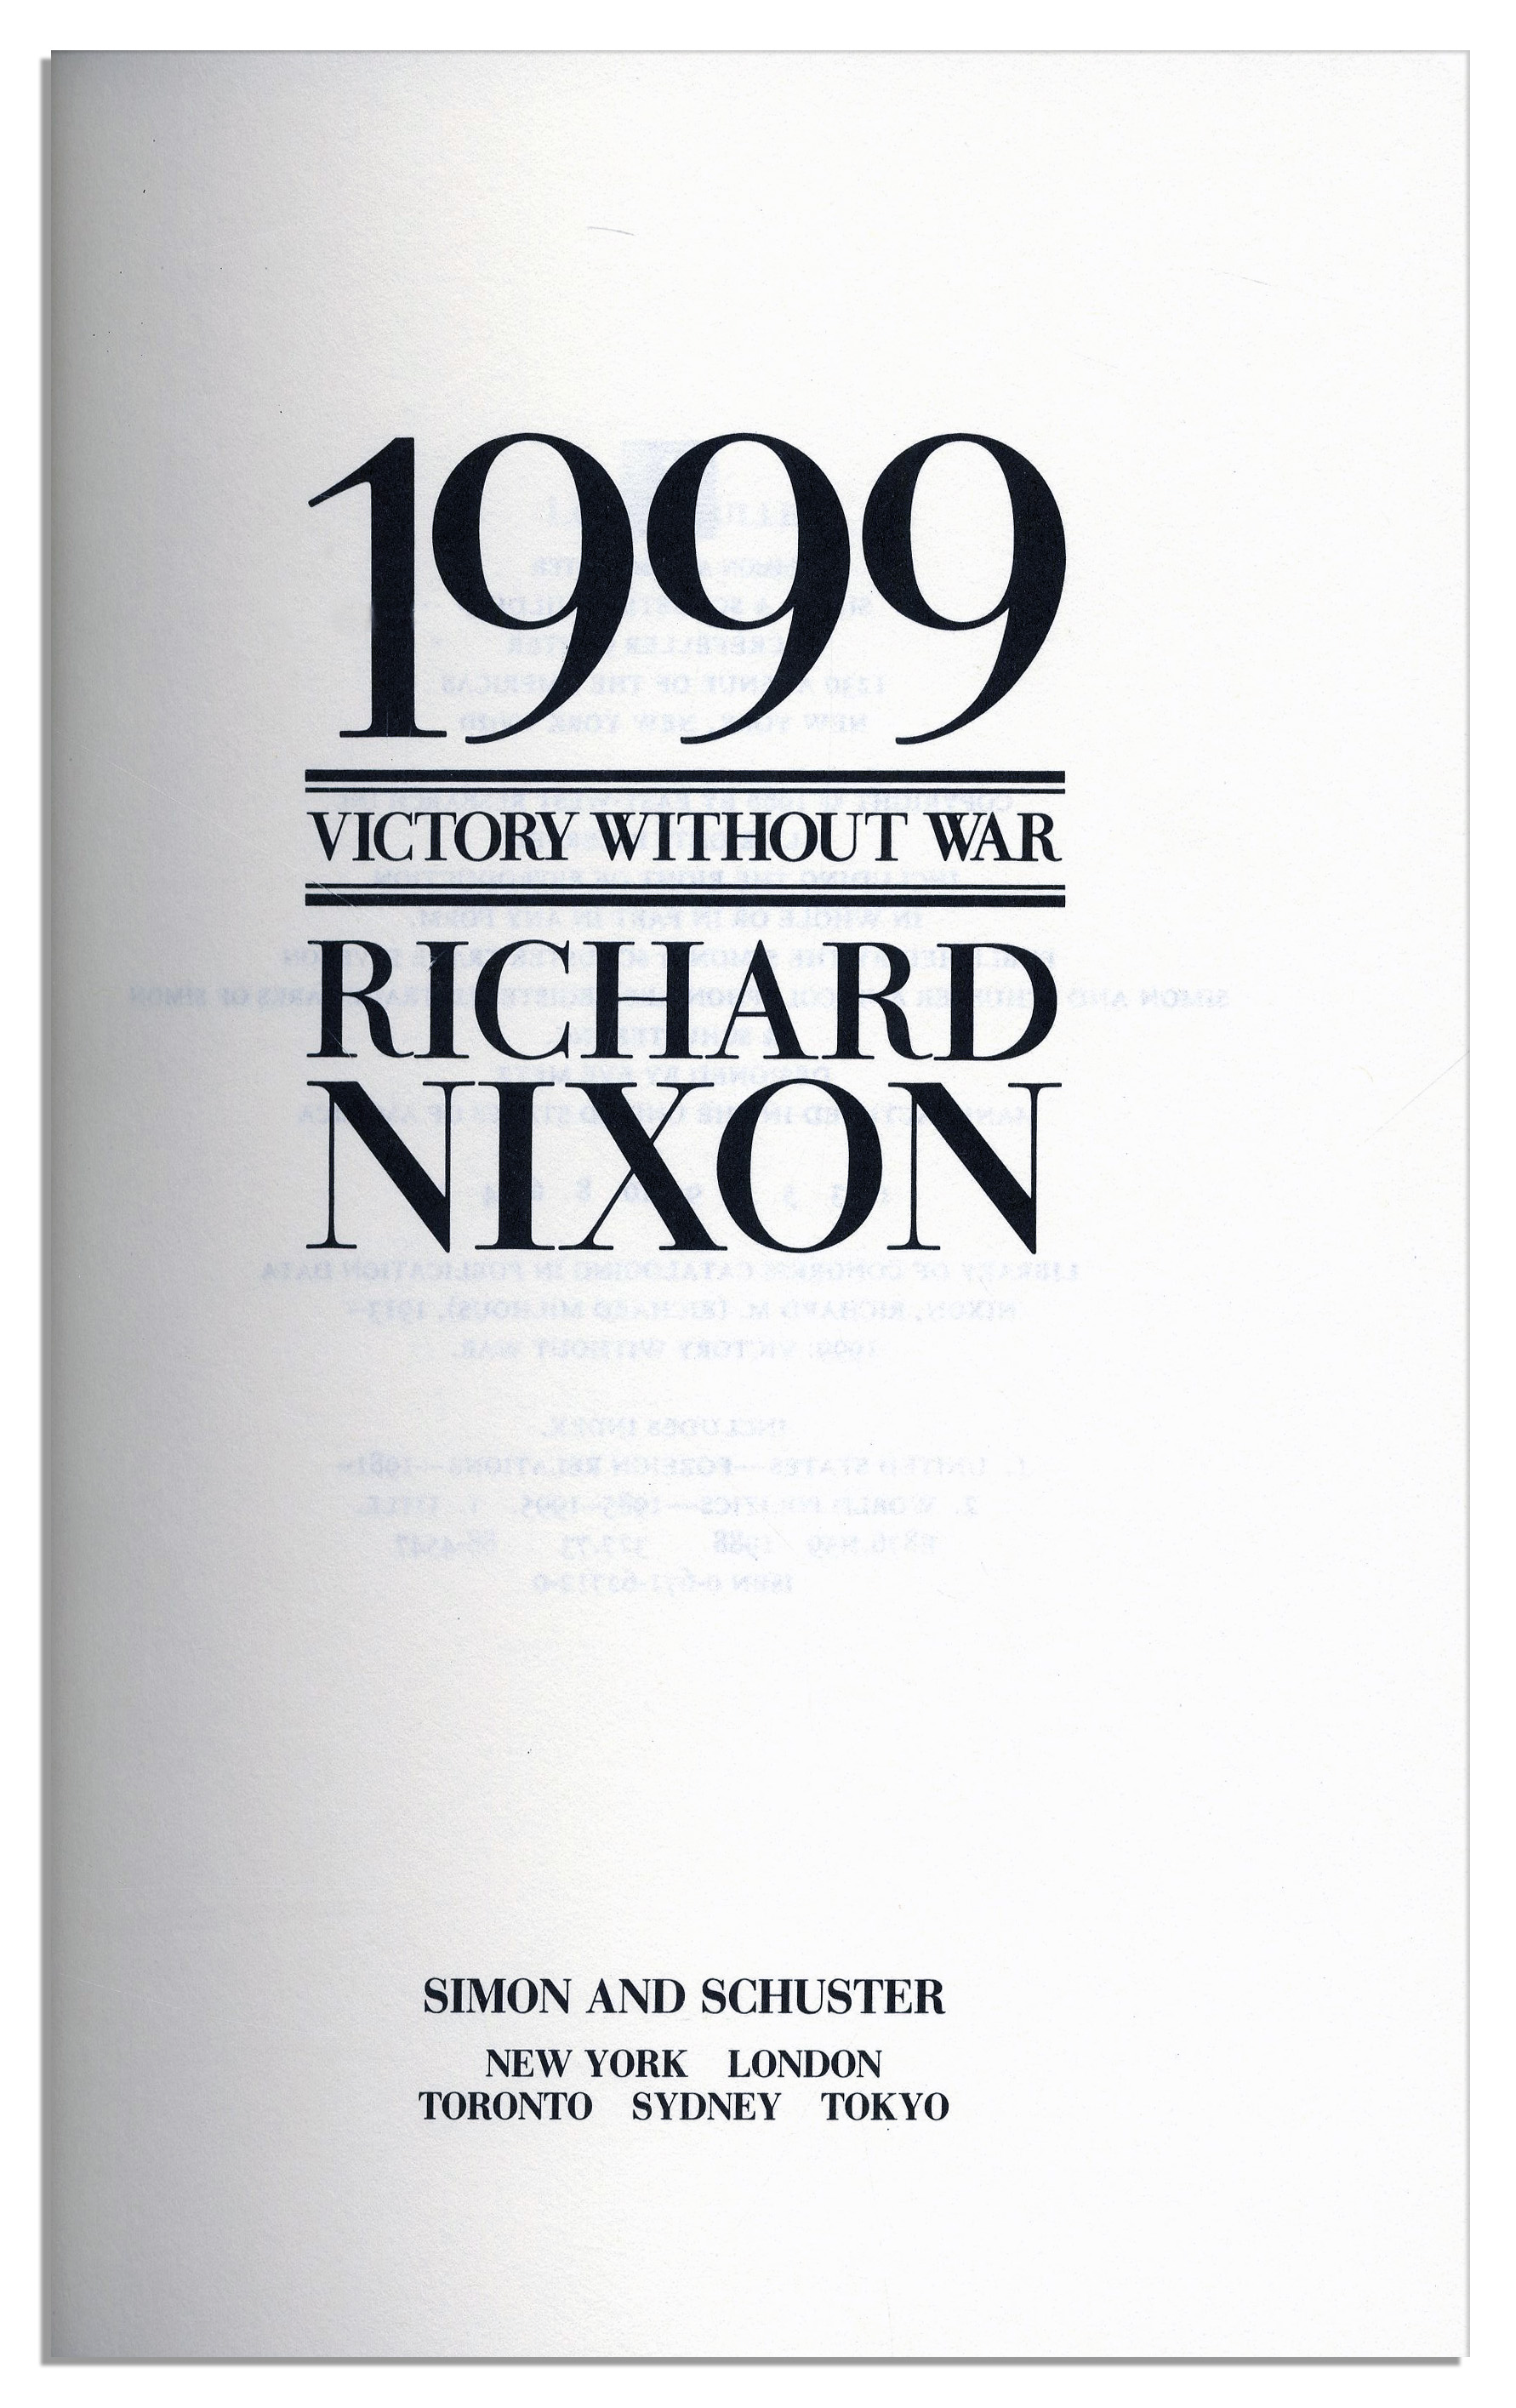 """the nixon years essay President nixon and the """"watergate scandal"""" - richard nixon essay example a white house political scandal came to light."""